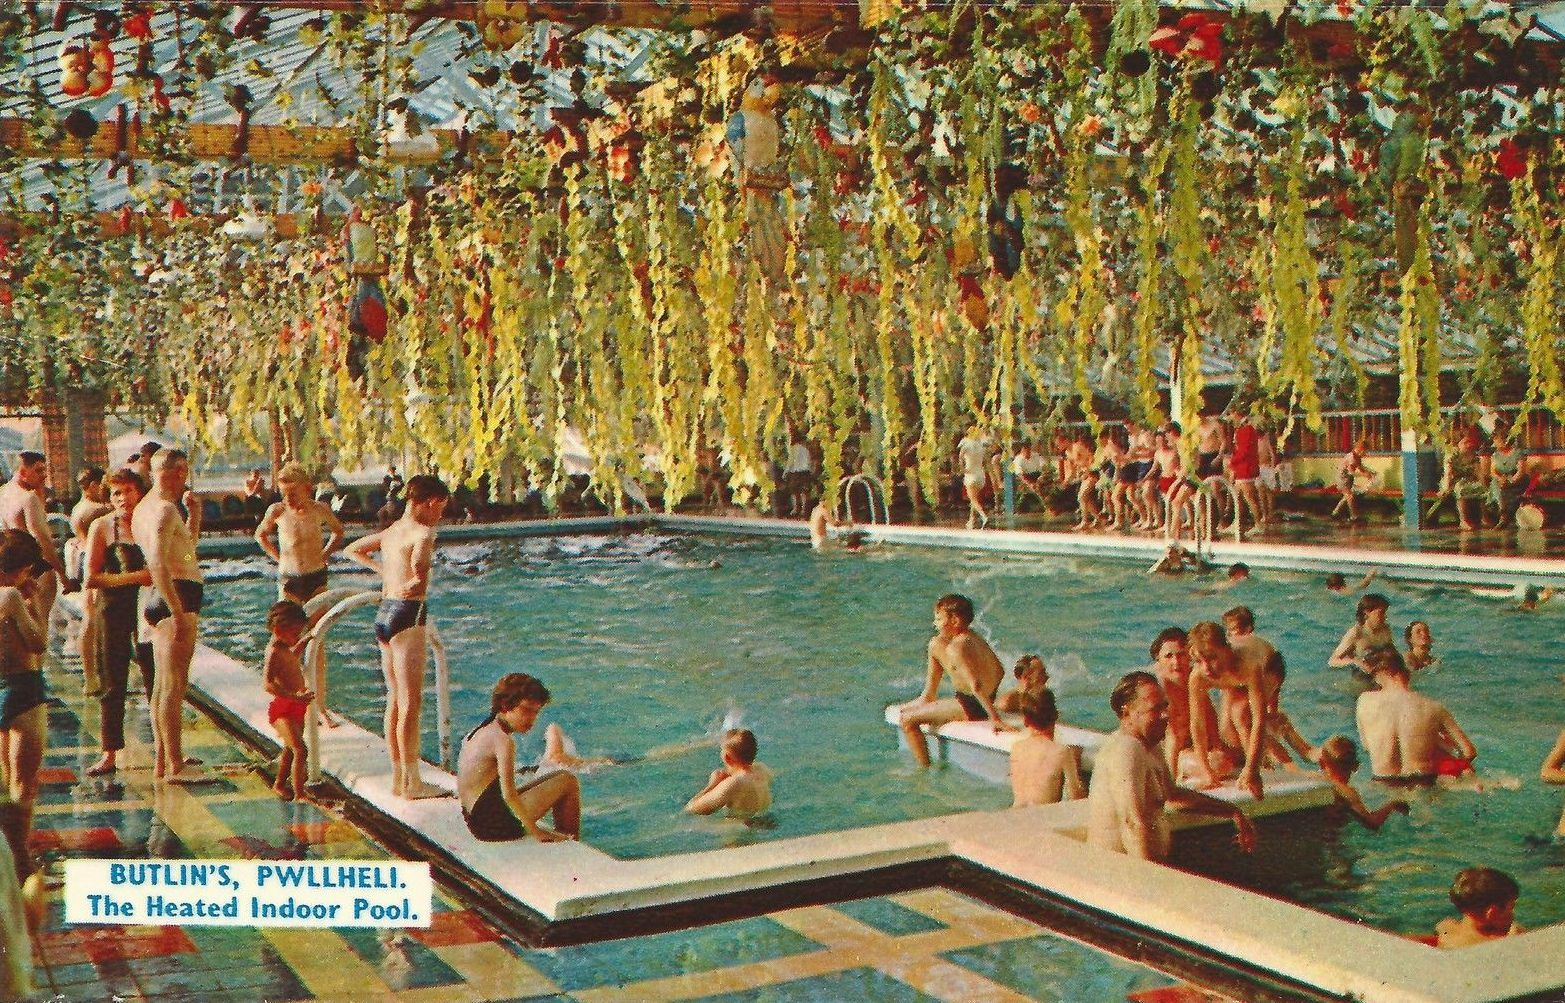 The Heated Indoor Pool At Butlinu0027s Pwllheli Holiday Camp In 1966.